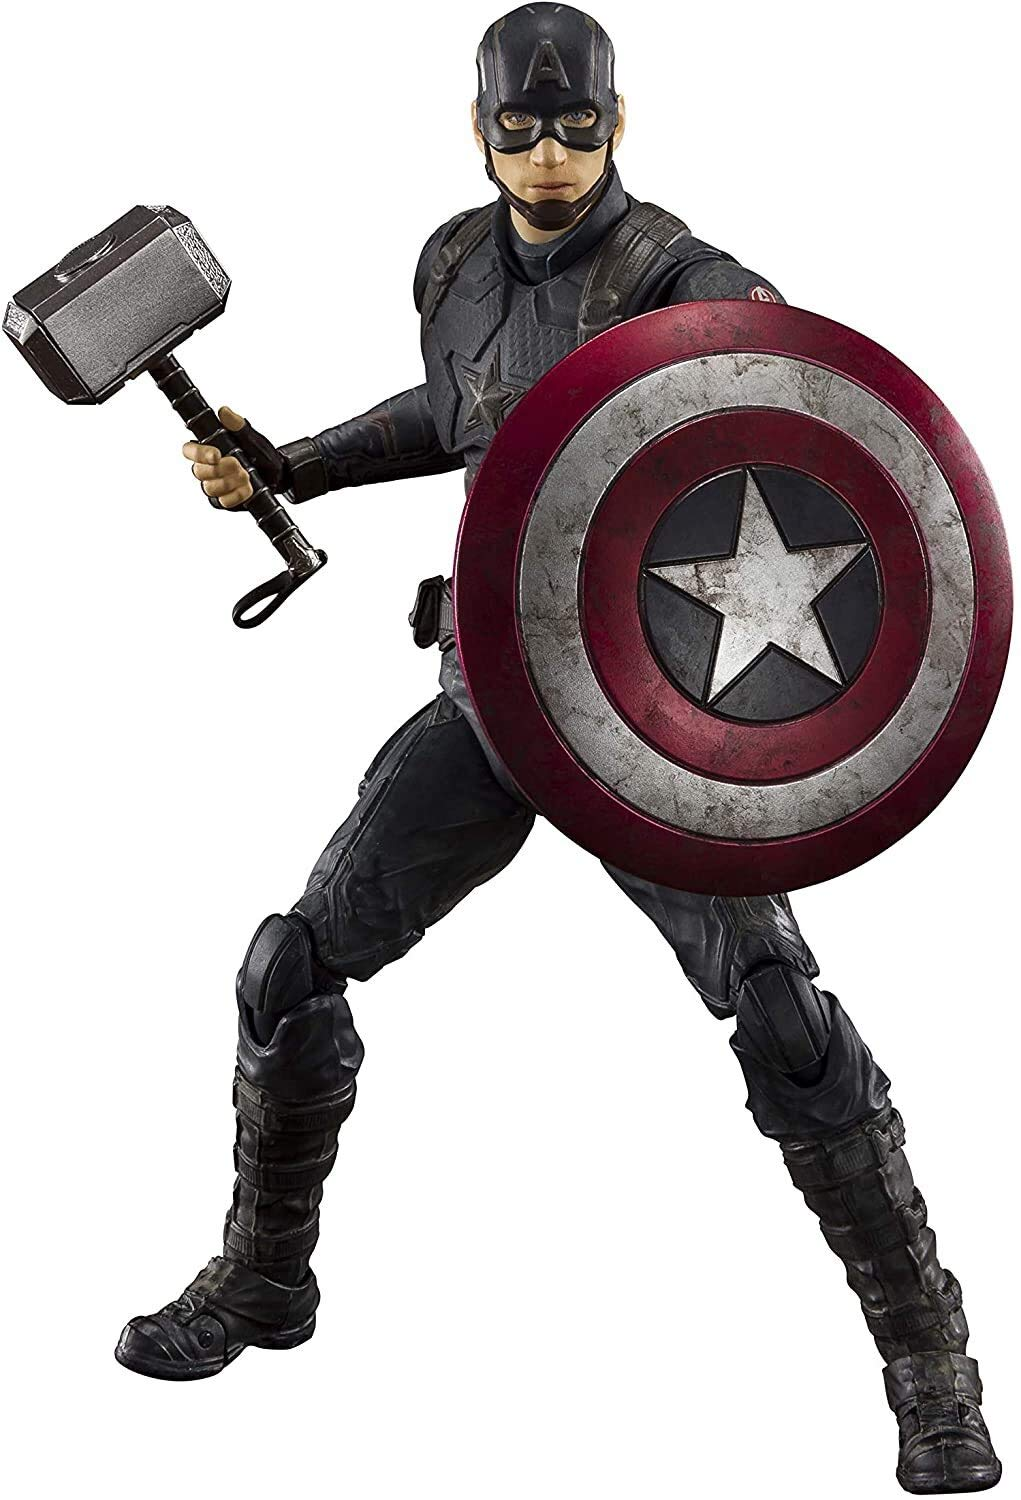 TAMASHII NATIONS S.H. Figuarts Captain America -Final Battle Edition - Avengers: Endgame, Multi, Approx. 150 mm